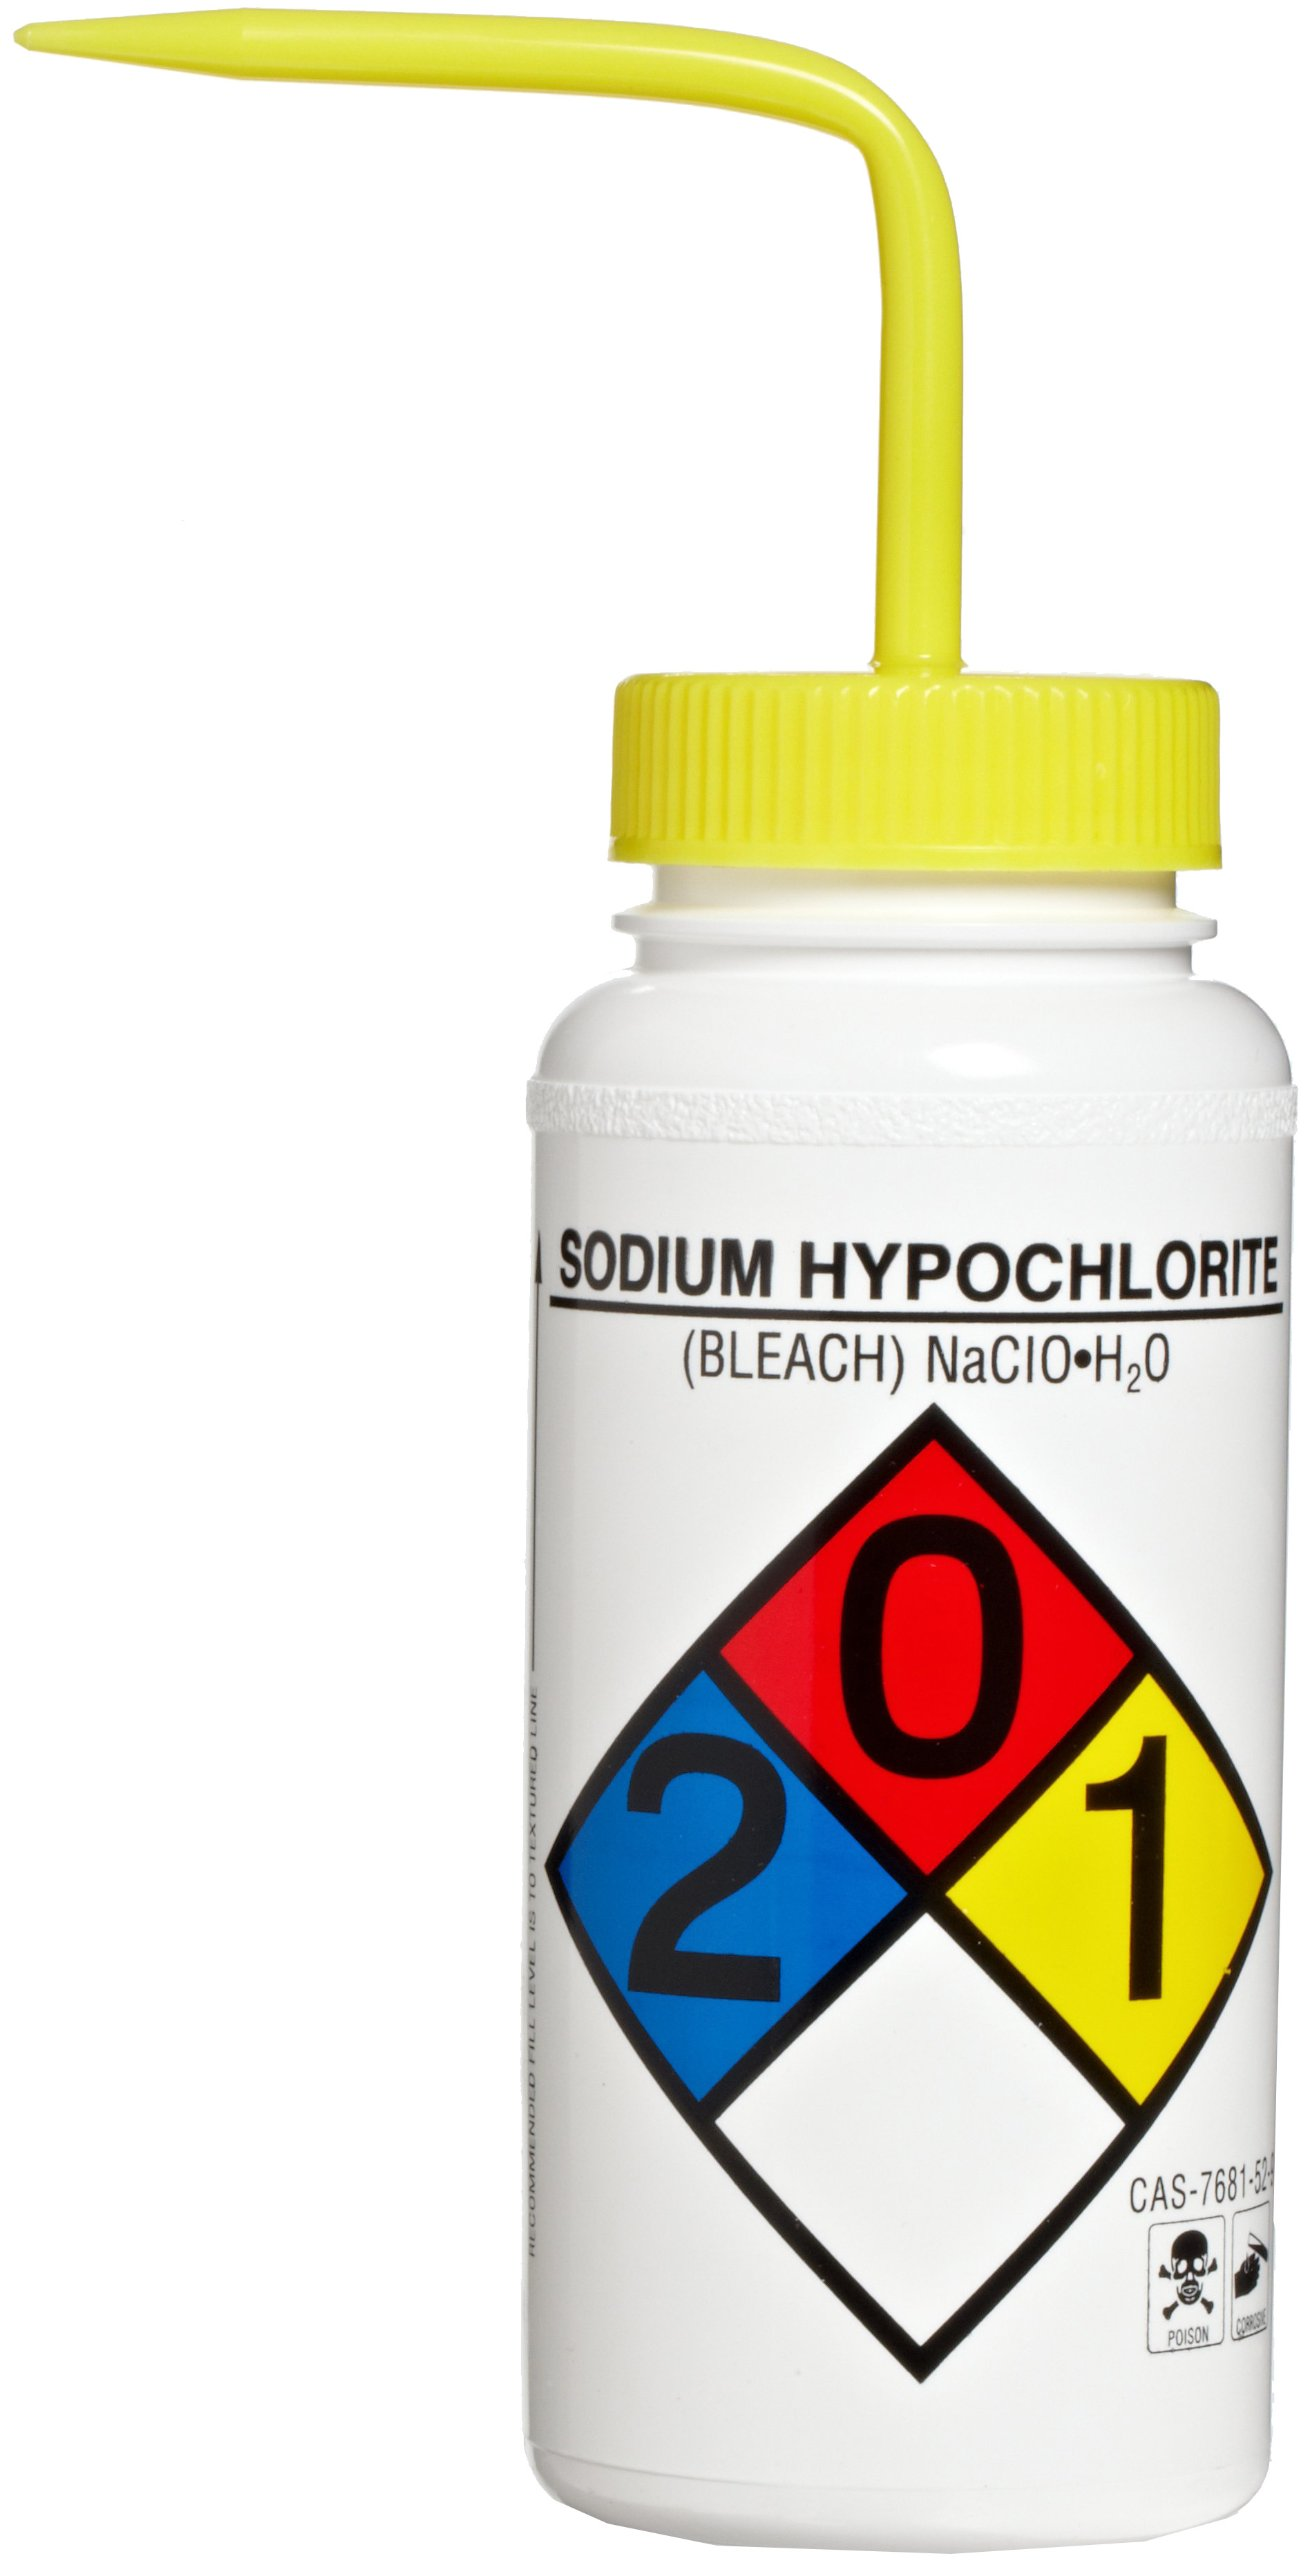 Bel-Art Right-to-Know Safety-Vented/Labeled 4-Color Sodium Hypochlorite (Bleach) Wide-Mouth Wash Bottles; 500ml (16oz), Polyethylene w/Yellow Polypropylene Cap (Pack of 4) (F11816-0015)